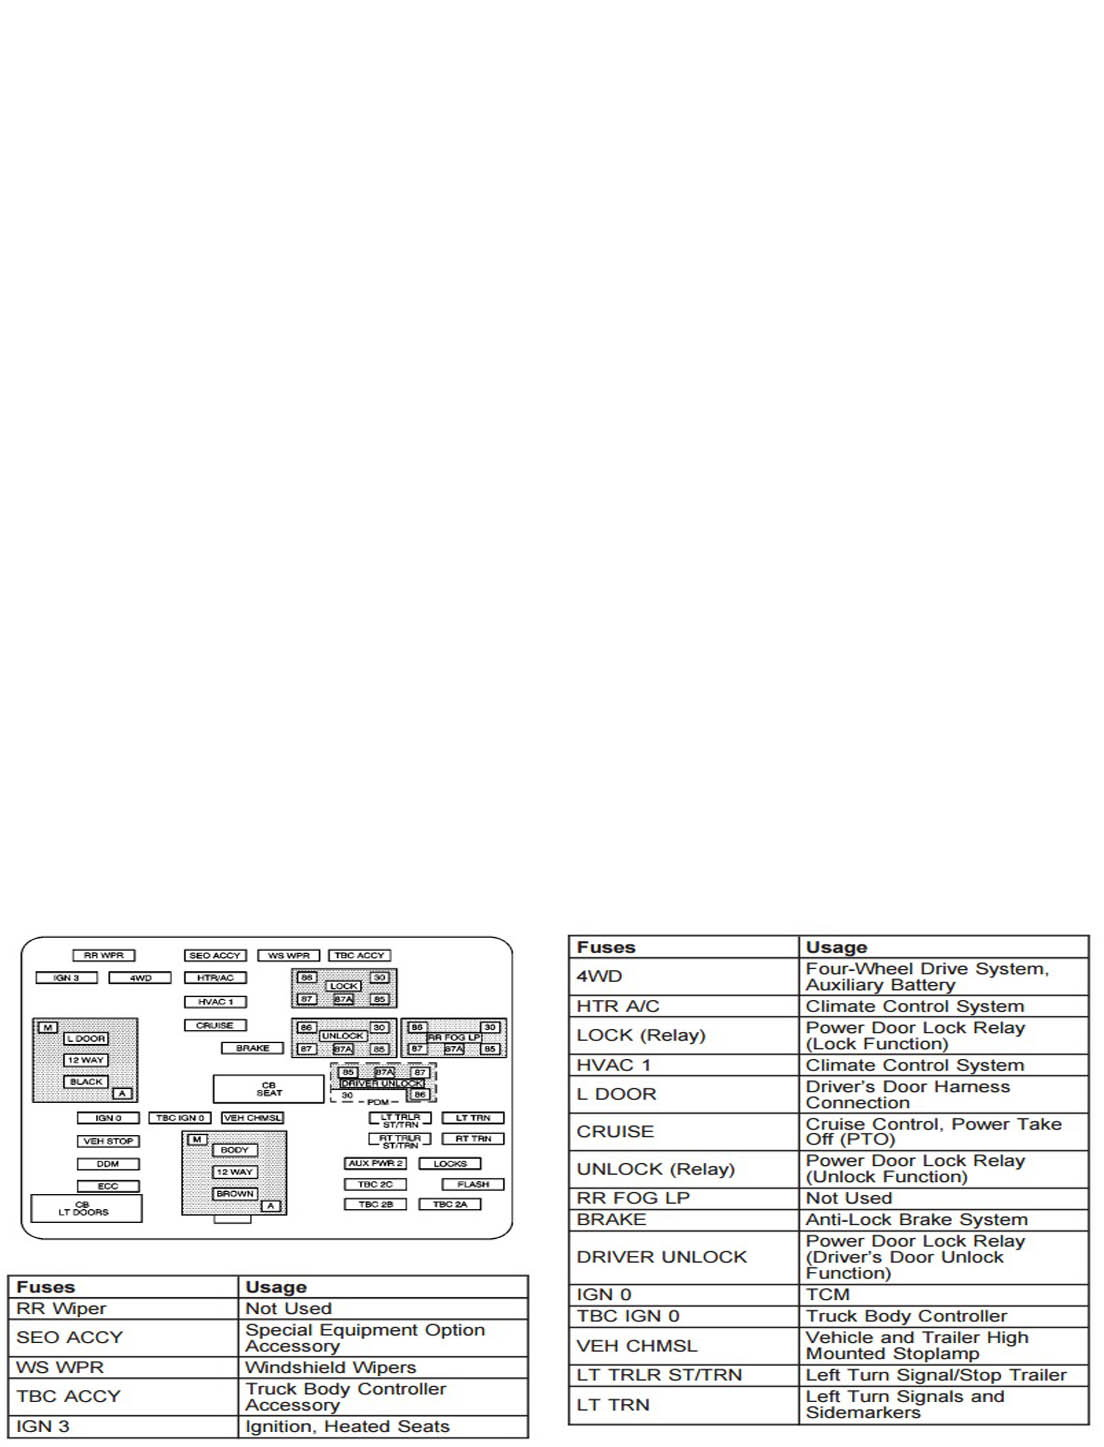 hight resolution of chevrolet silverado gmt800 1999 2006 fuse box diagram chevroletforum rh chevroletforum com 2005 chevy colorado fuse